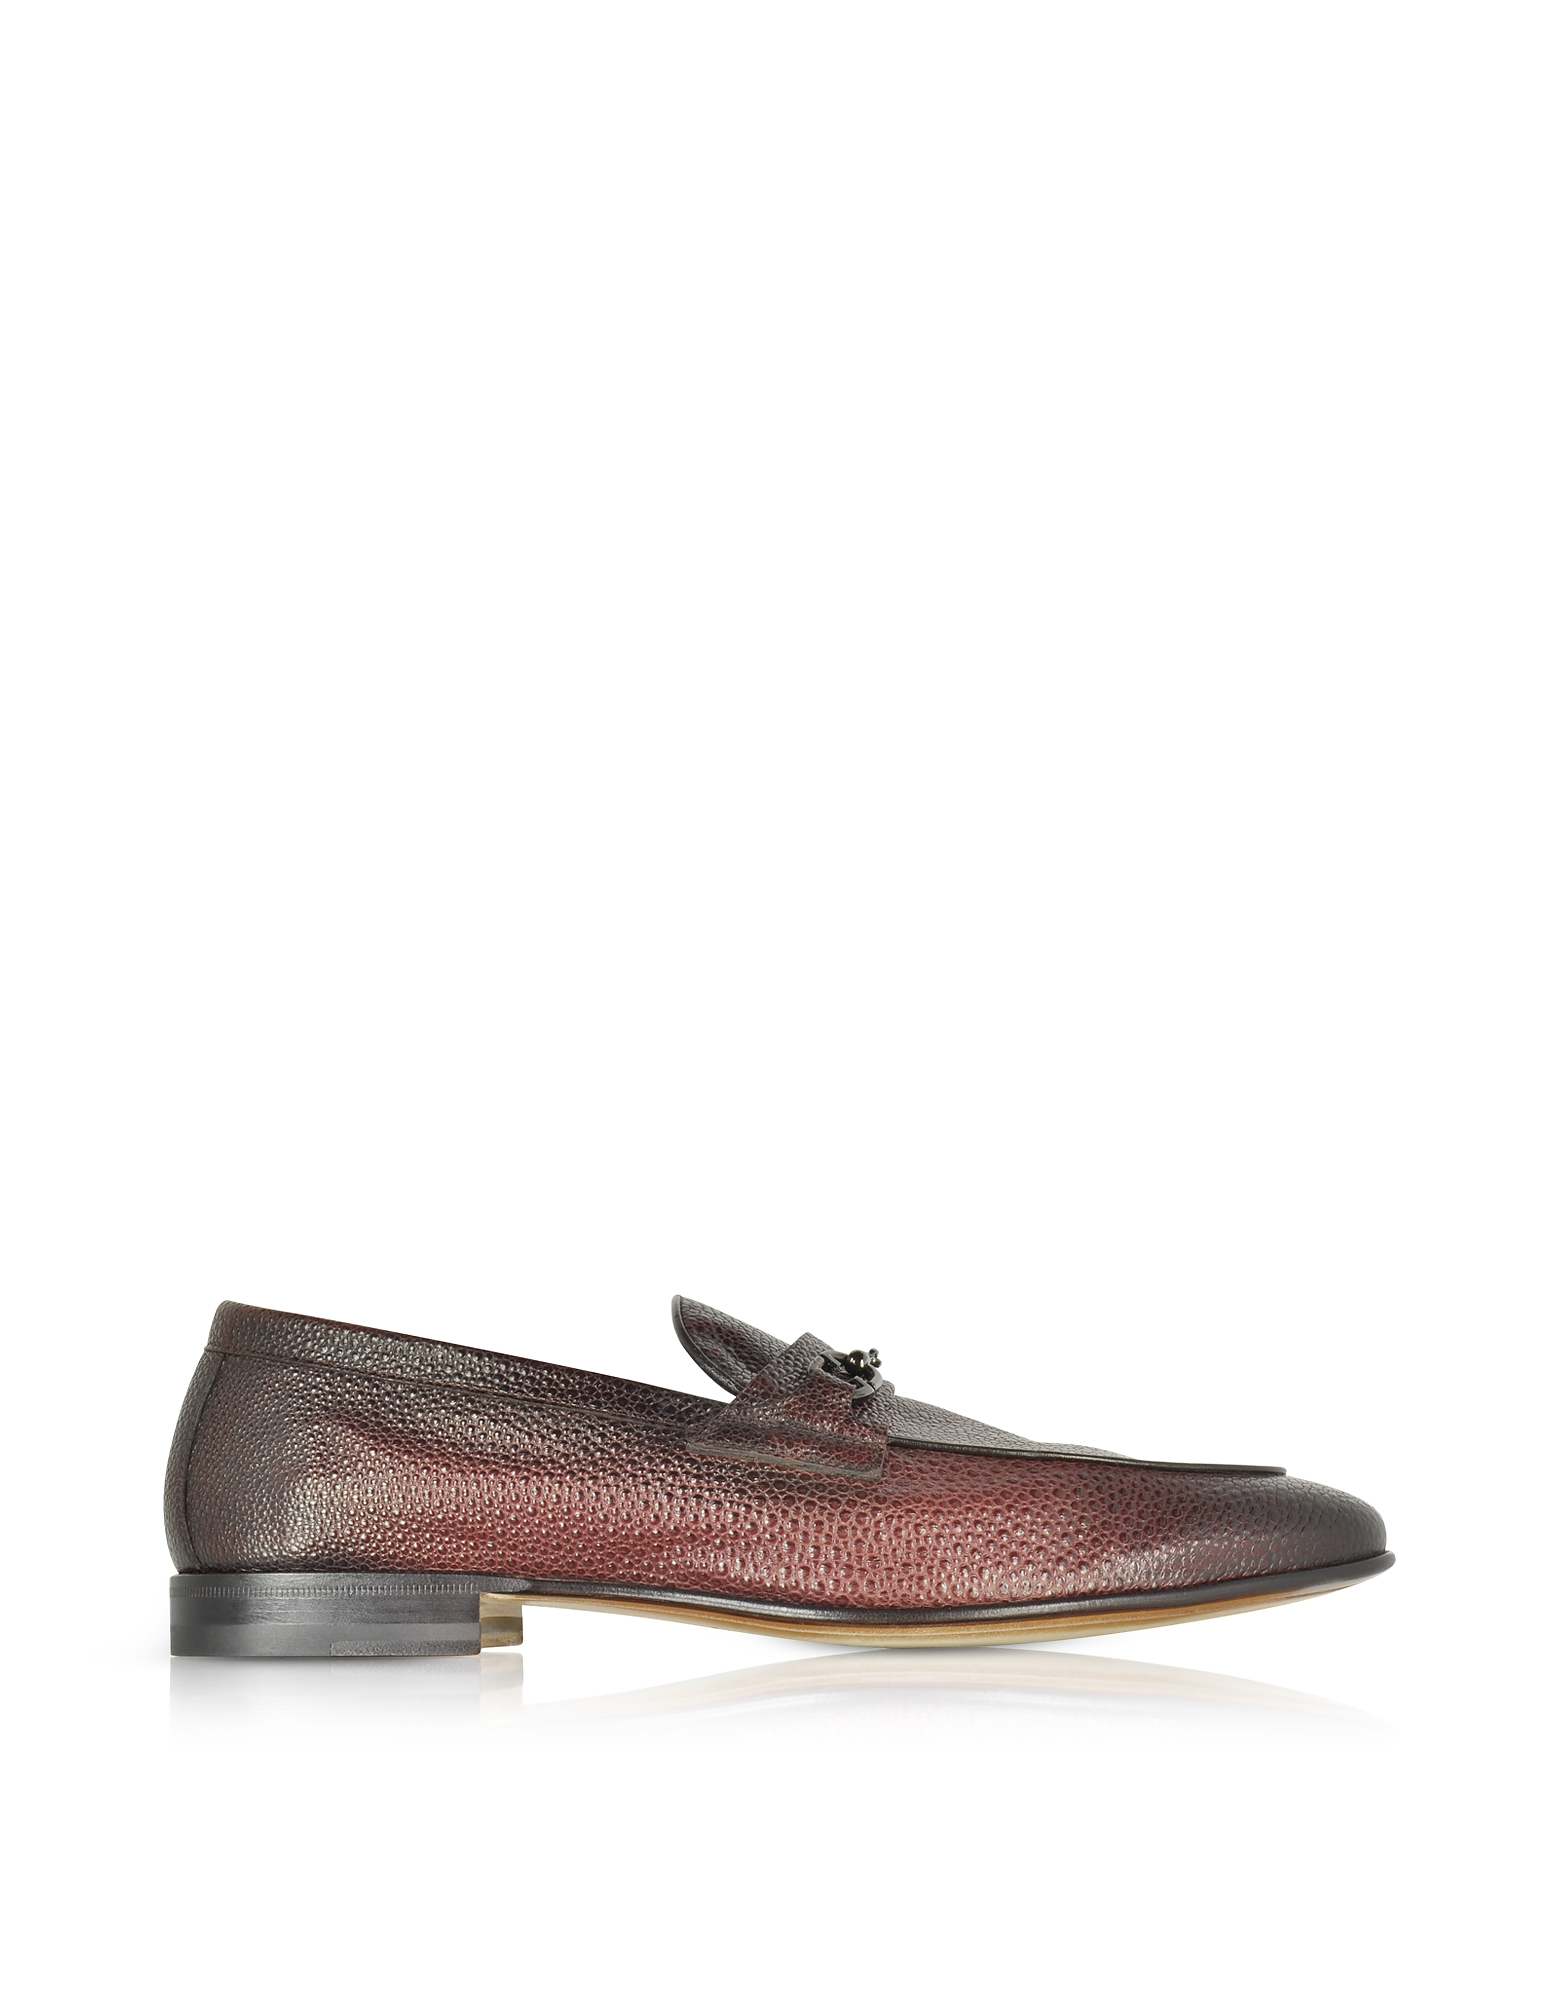 Santoni Shoes, Brownish Red Stingray Leather Horsebit Loafer